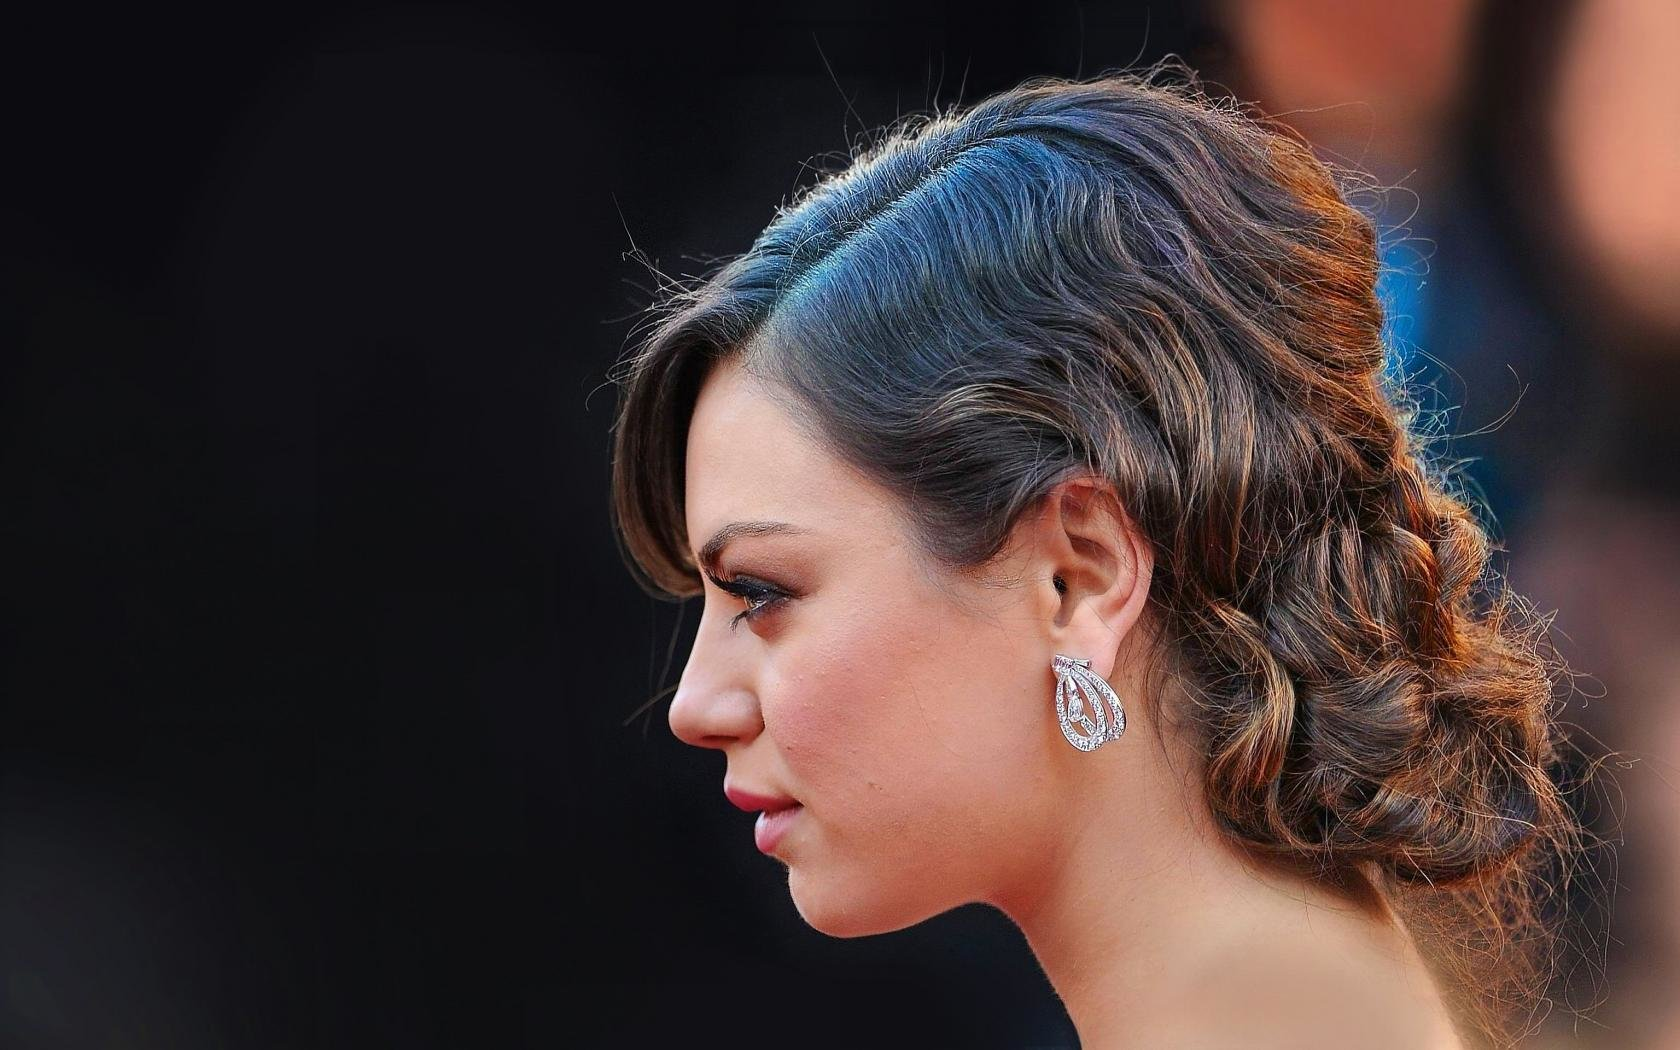 Free download Mila Kunis wallpaper ID:291500 hd 1680x1050 for PC